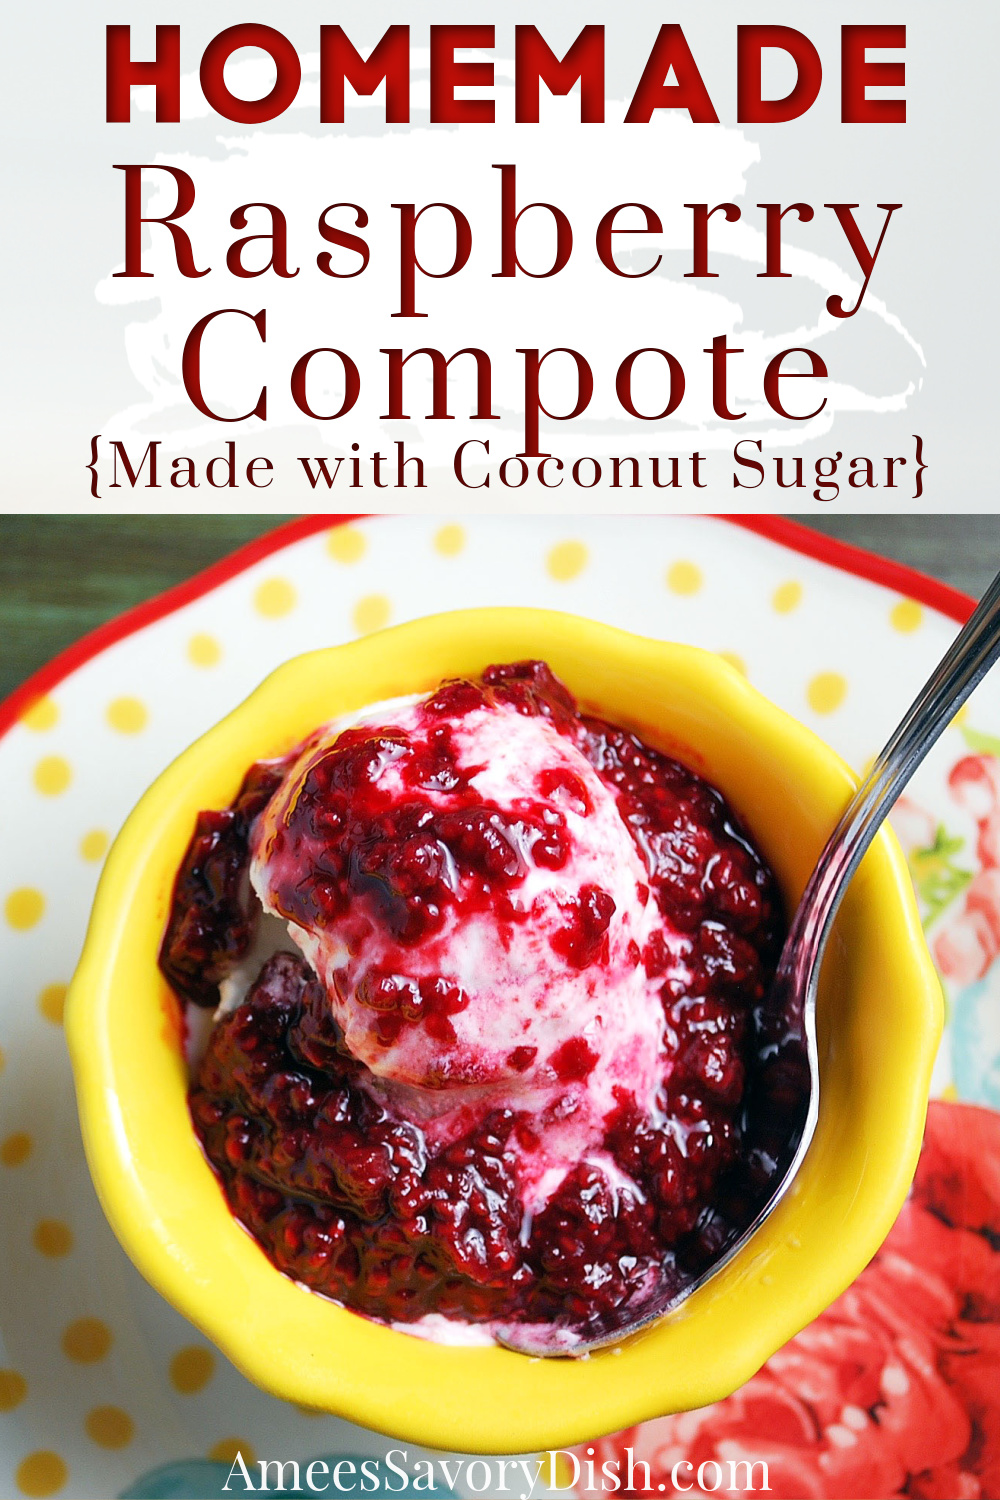 A simple recipe for easy raspberry compote that makes the perfect topping for frozen yogurt, oatmeal, pancakes, and waffles. #raspberrycompote #healthydesserts #glutenfreedessert #dairyfreedessert #compote via @Ameecooks